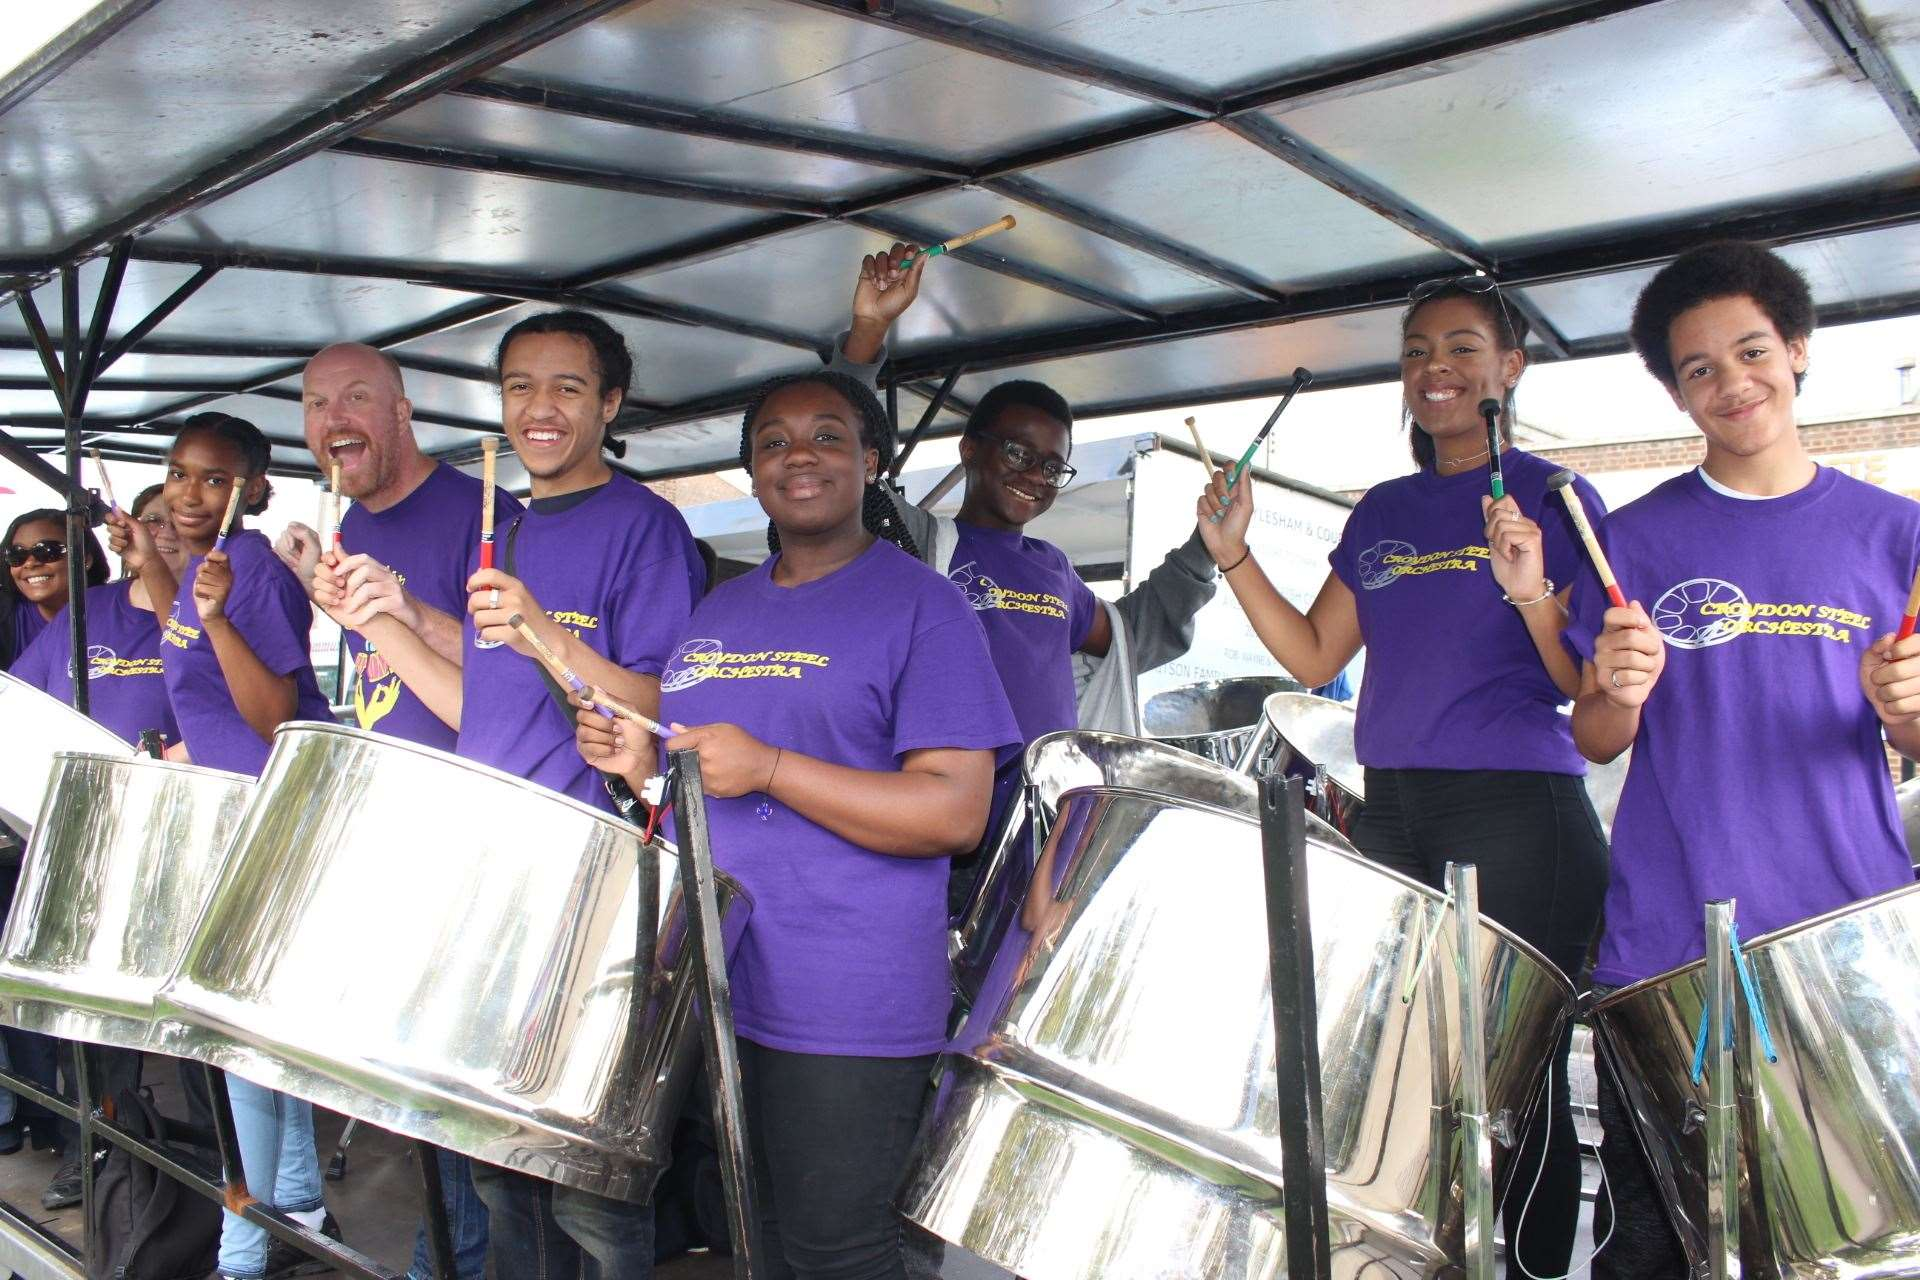 Croydon Steet Band from the Sheppey Carnival 2017 (15324254)